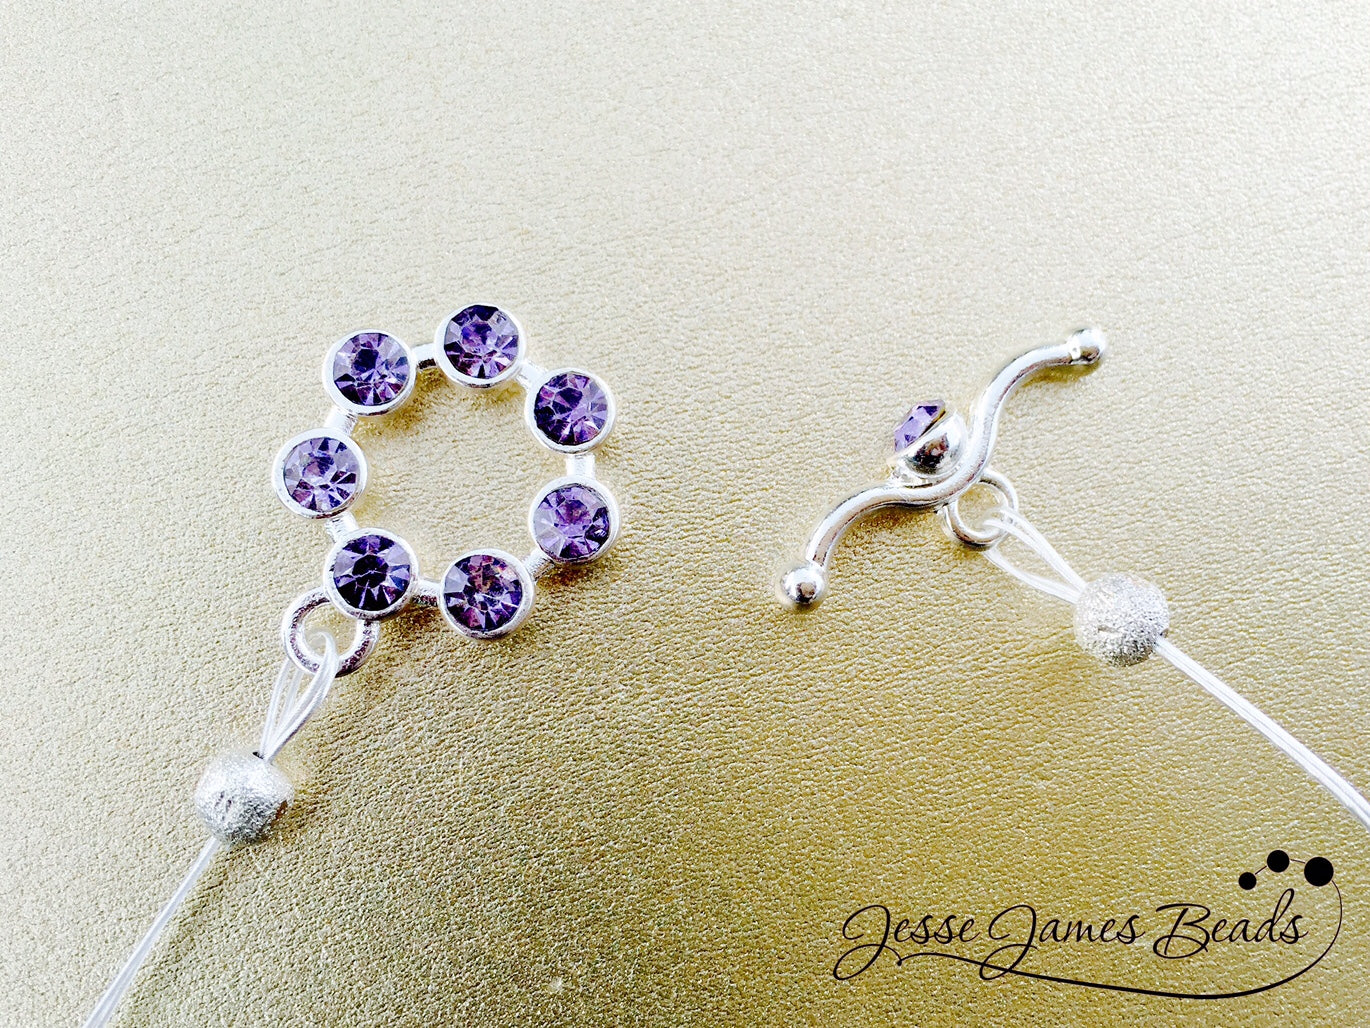 Purple Rain Necklace Clasp - Sparkly Purple Toggle Clasp for Jewelry Making from Jesse James Beads